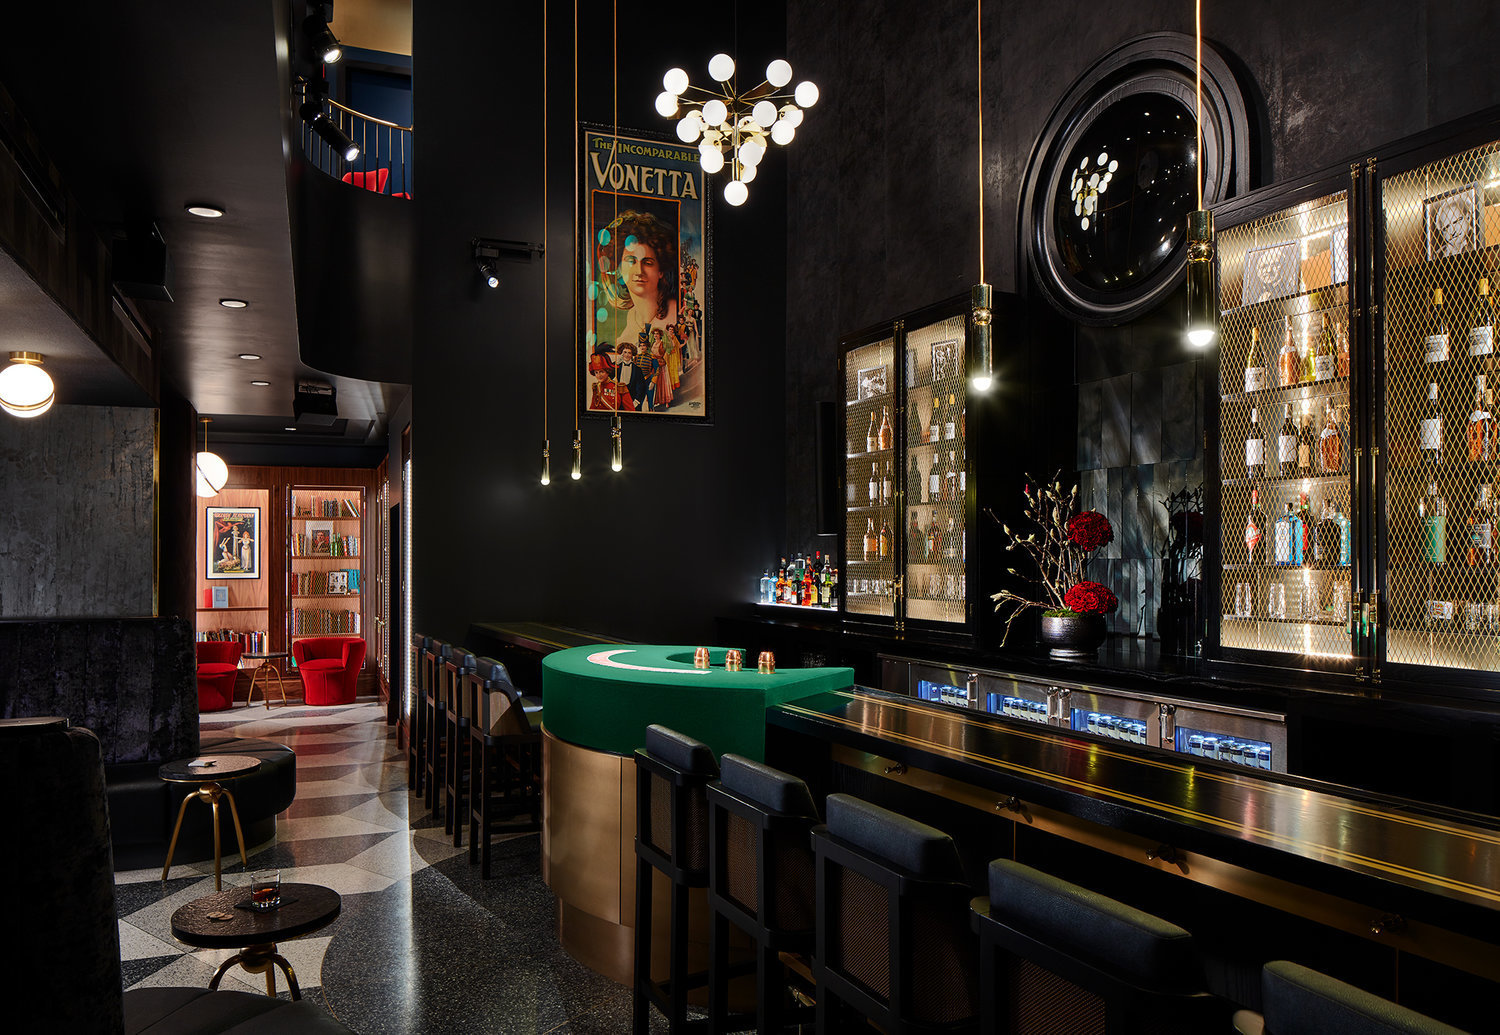 The performance bar of the Chicago Magic Lounge features luxurious seating and Art Deco interior design.